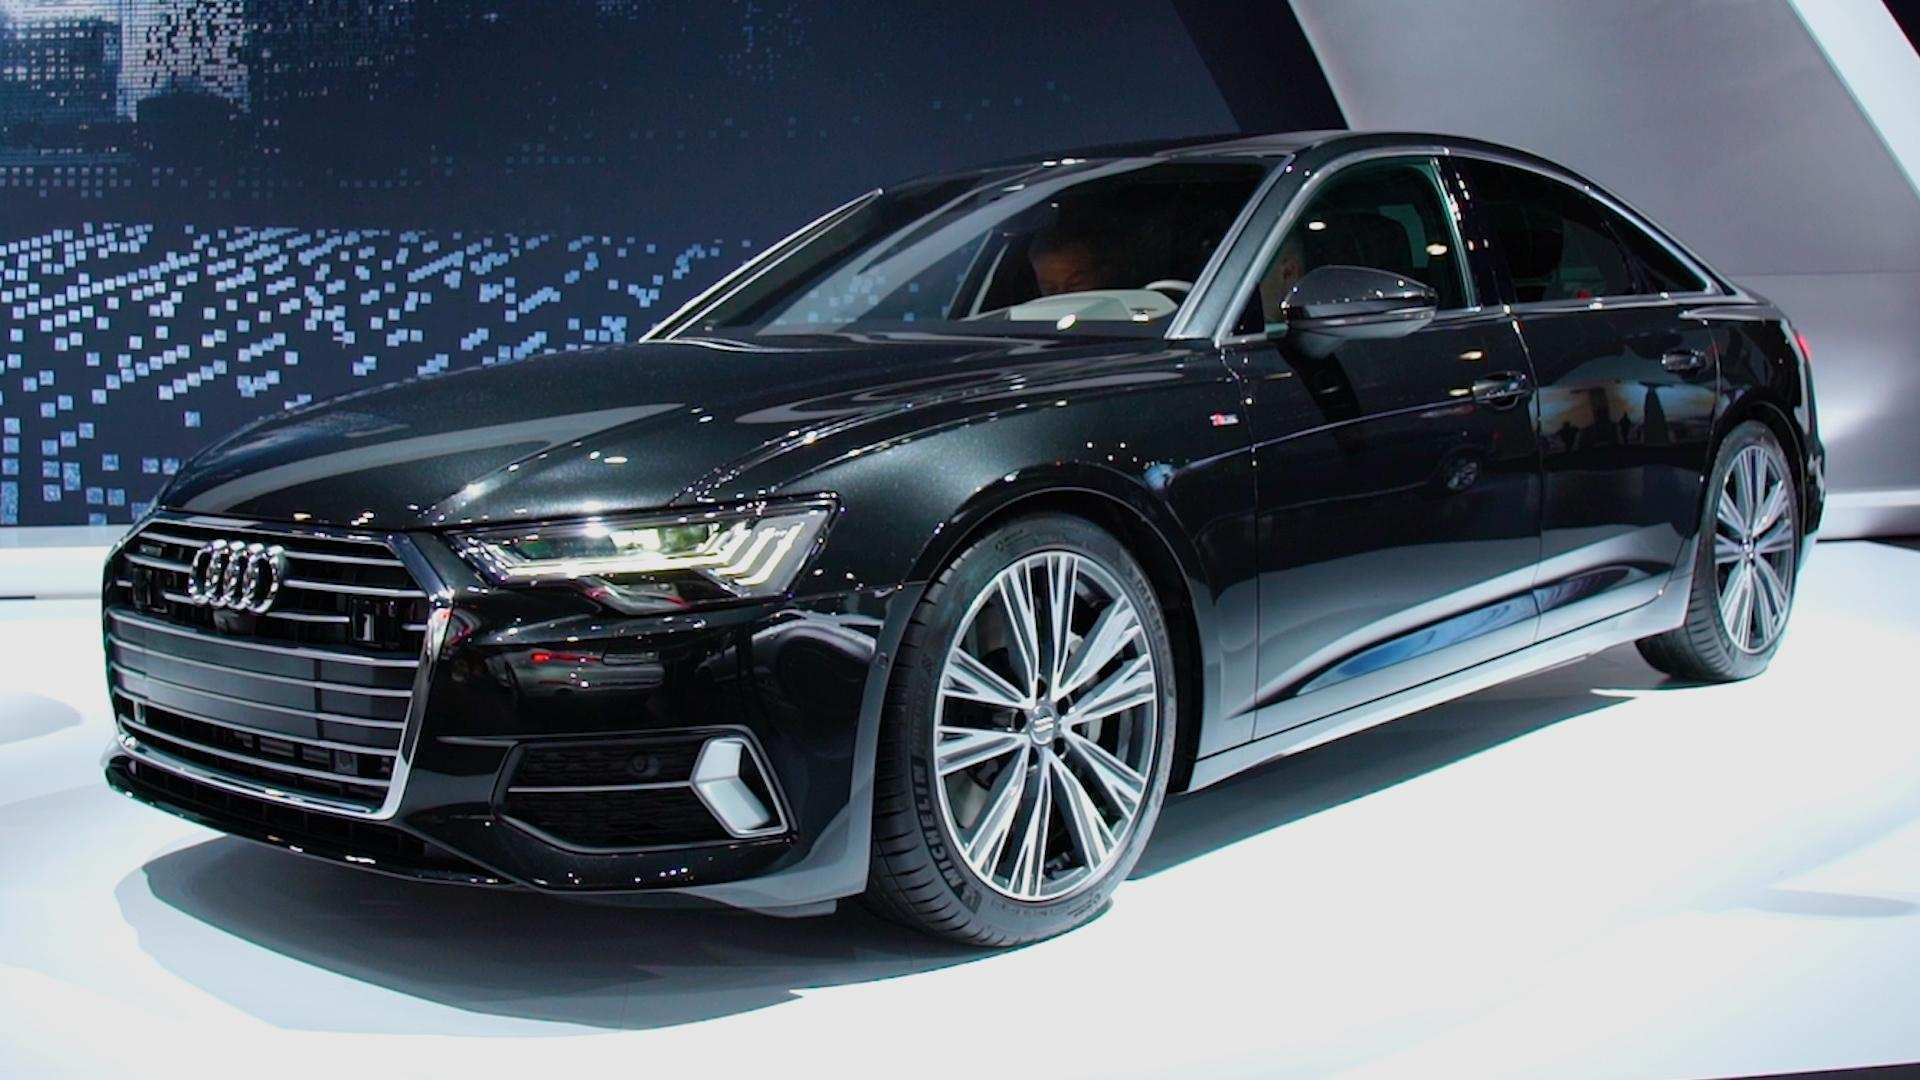 12 Great 2019 Audi A6 Msrp Specs and Review by 2019 Audi A6 Msrp